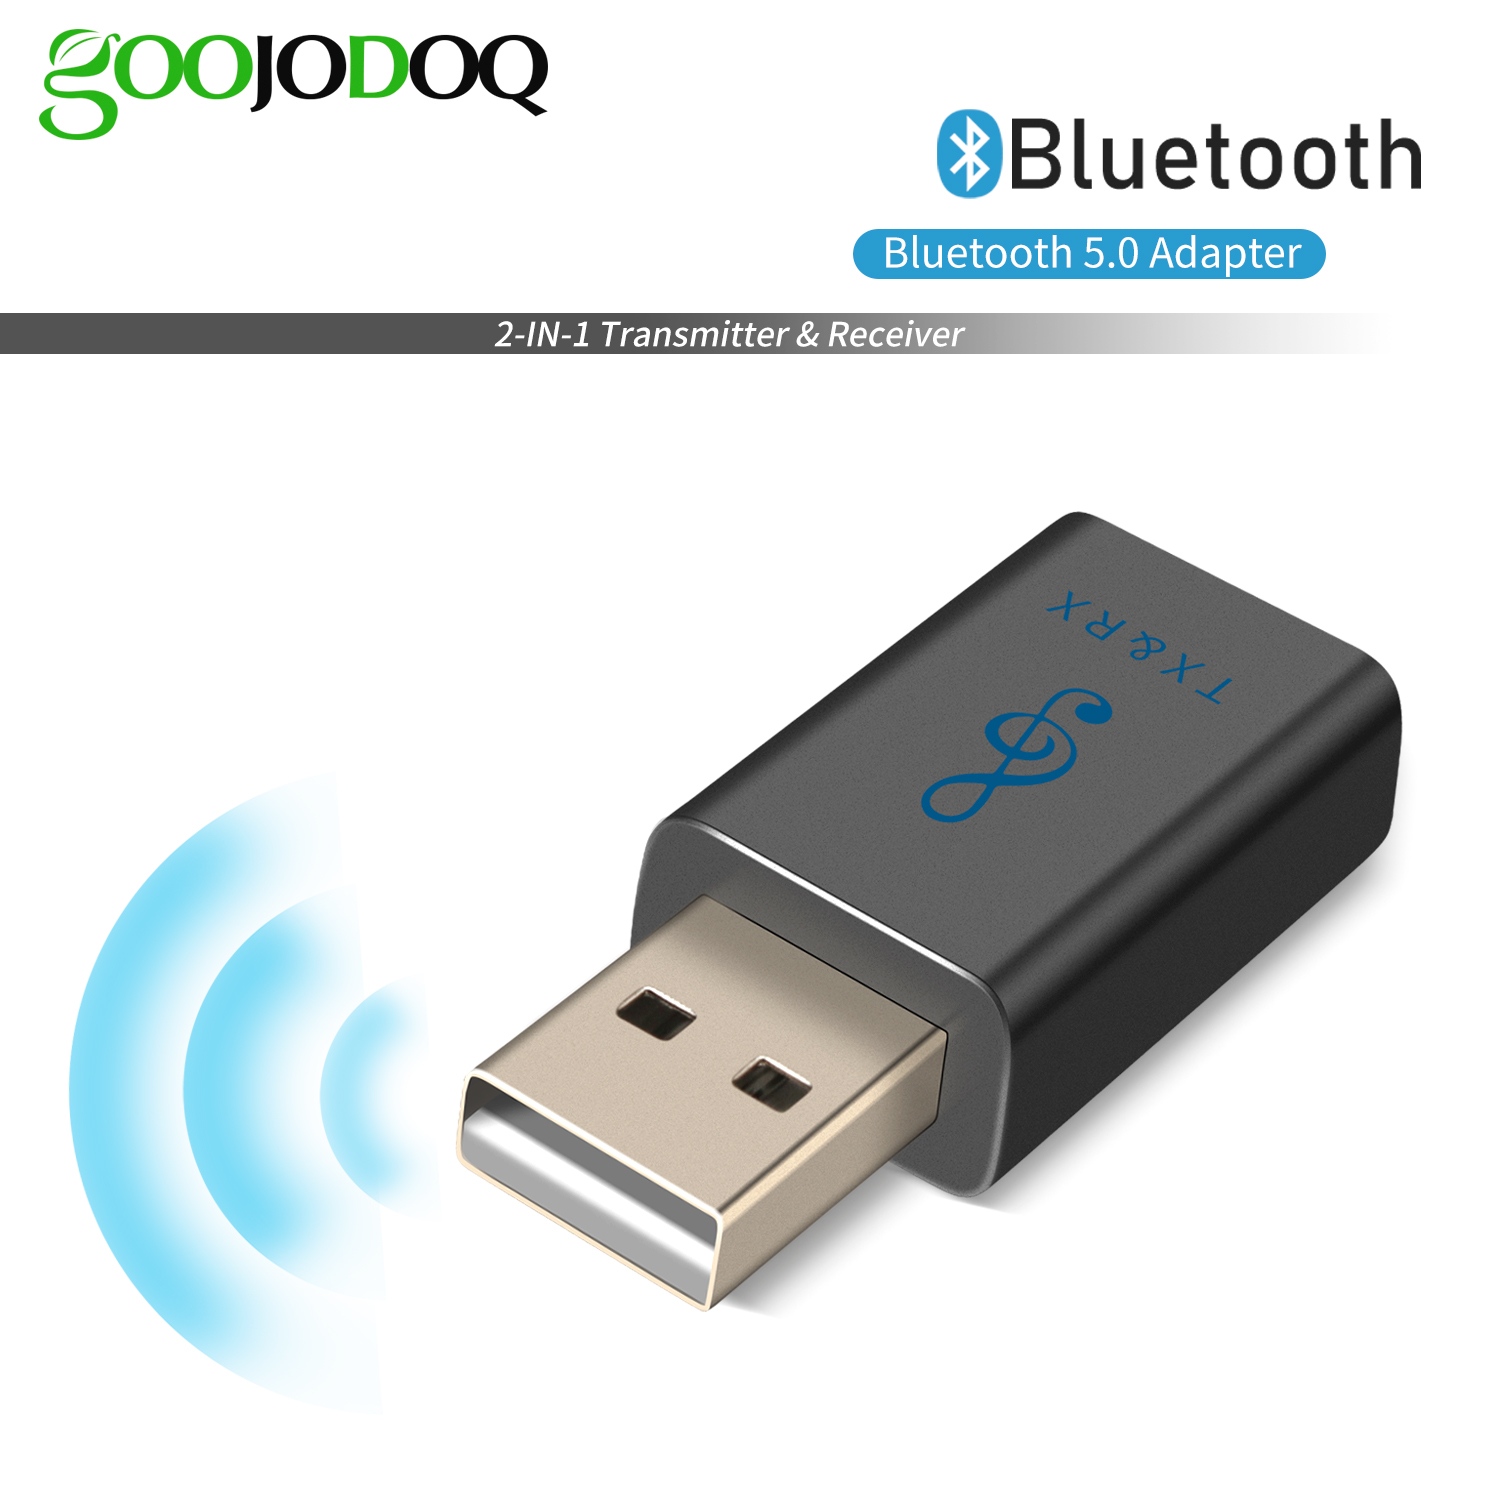 USB Bluetooth 5.0 Transmitter Receiver Portable 2 in 1 USB Wireless Bluetooth Adapter with 3.5mm aux Cable for TV//PC//Car//Home Stereo System